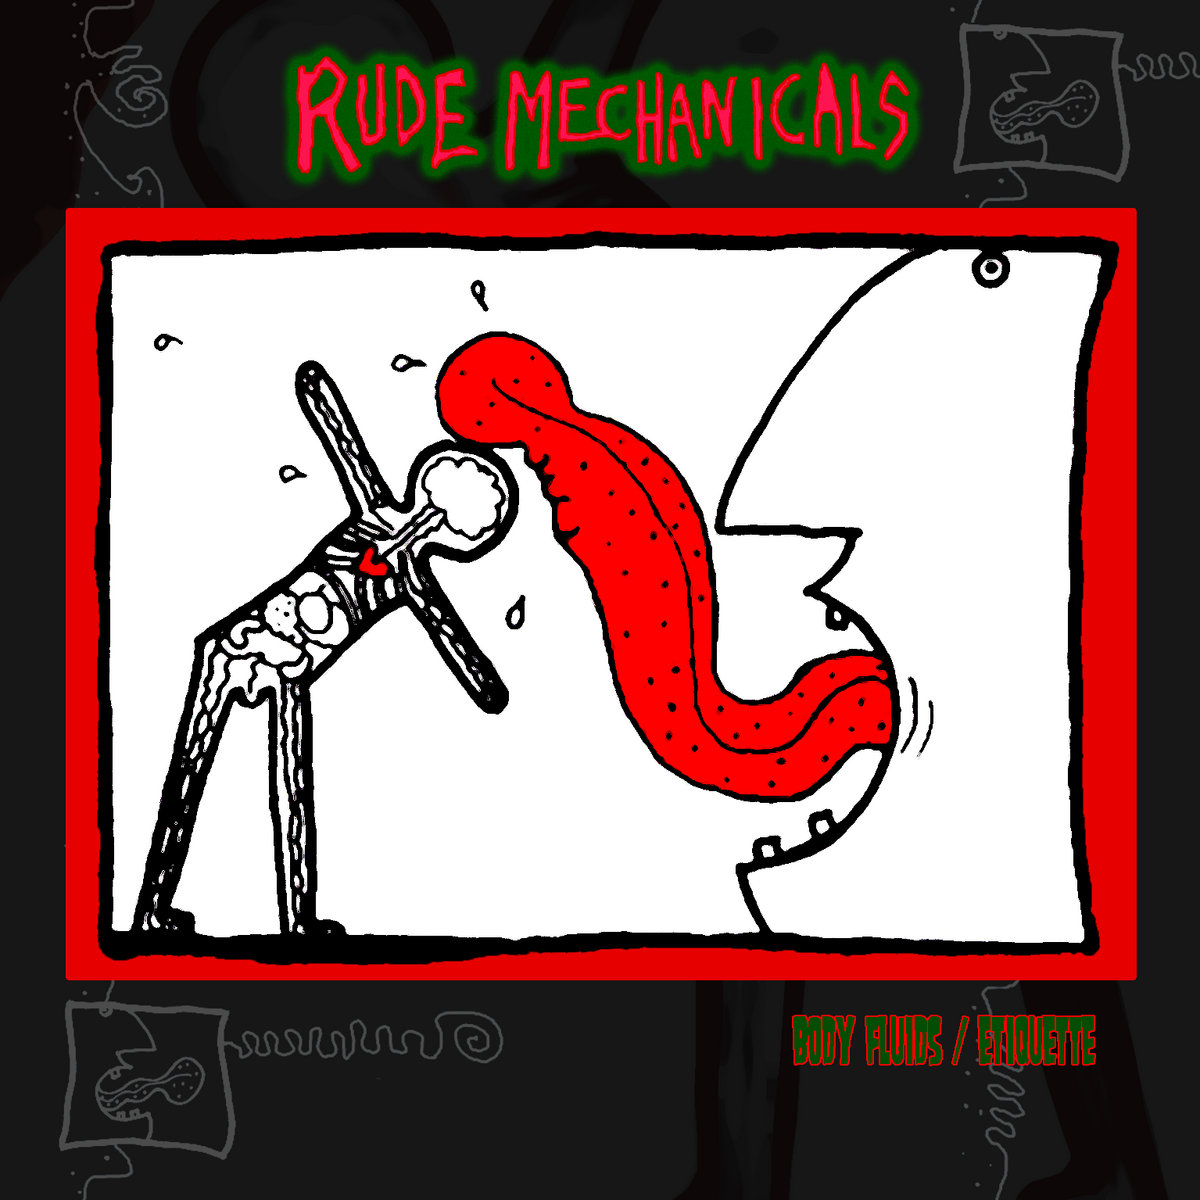 RUDE MECHANICALS Etiquette by Miss Roberts & Rude Mechanicals